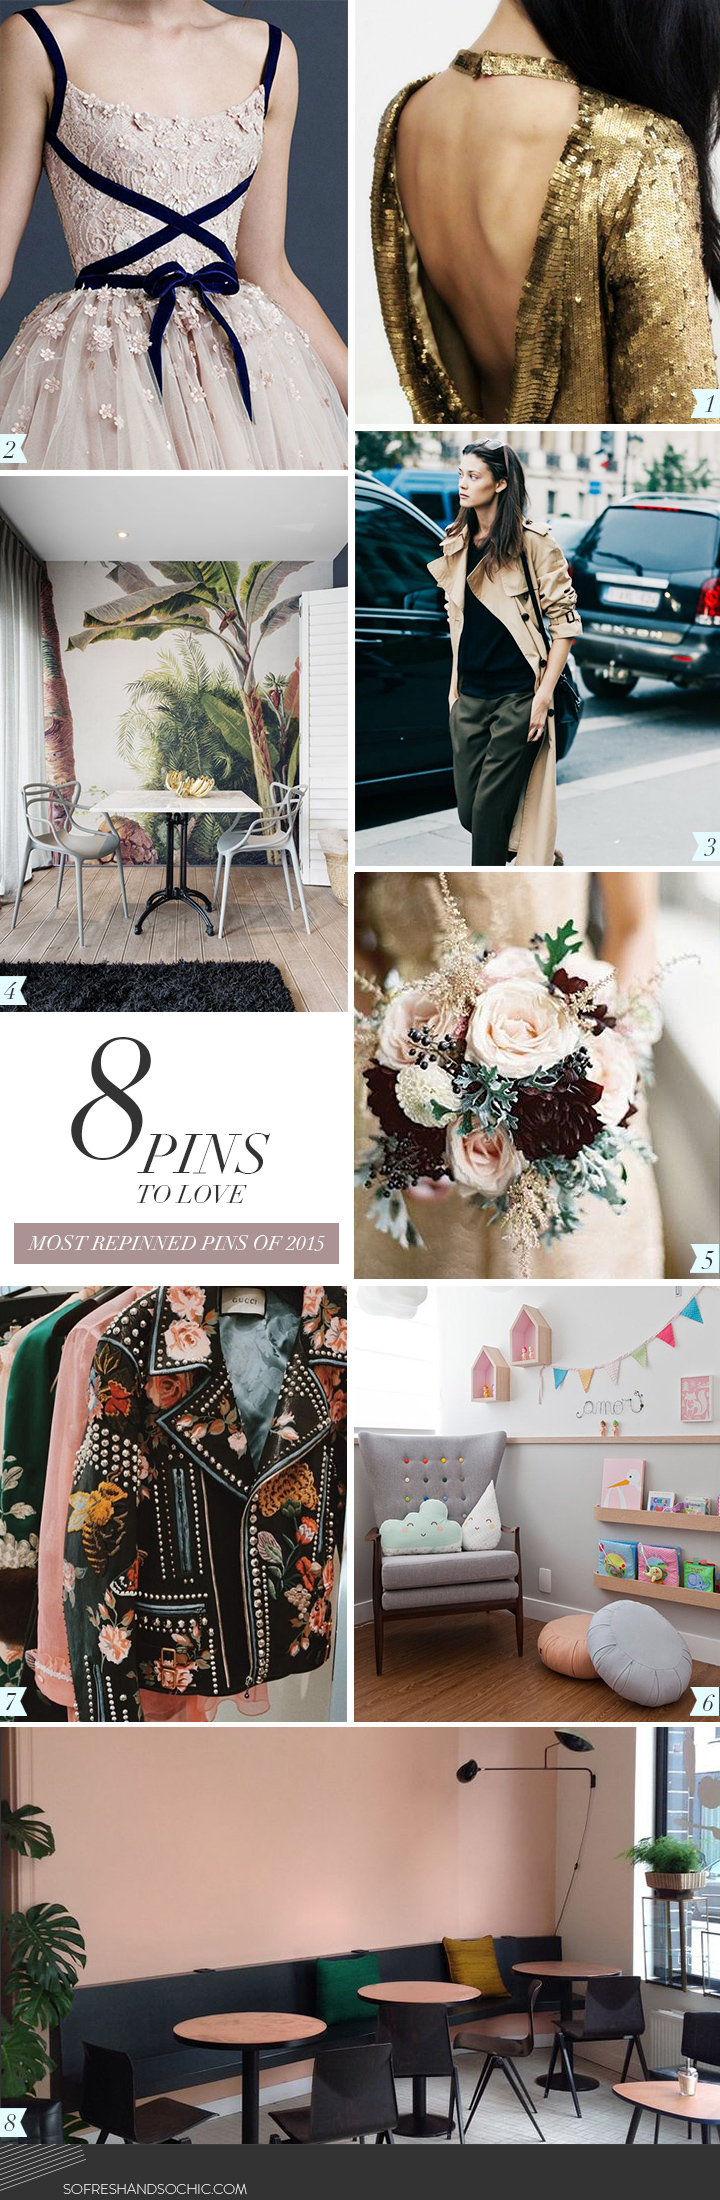 Year-End Wrap Up on So Fresh & So Chic // My Most Repinned Pins of 2015 #pinterest #sofreshandsochic #toppins